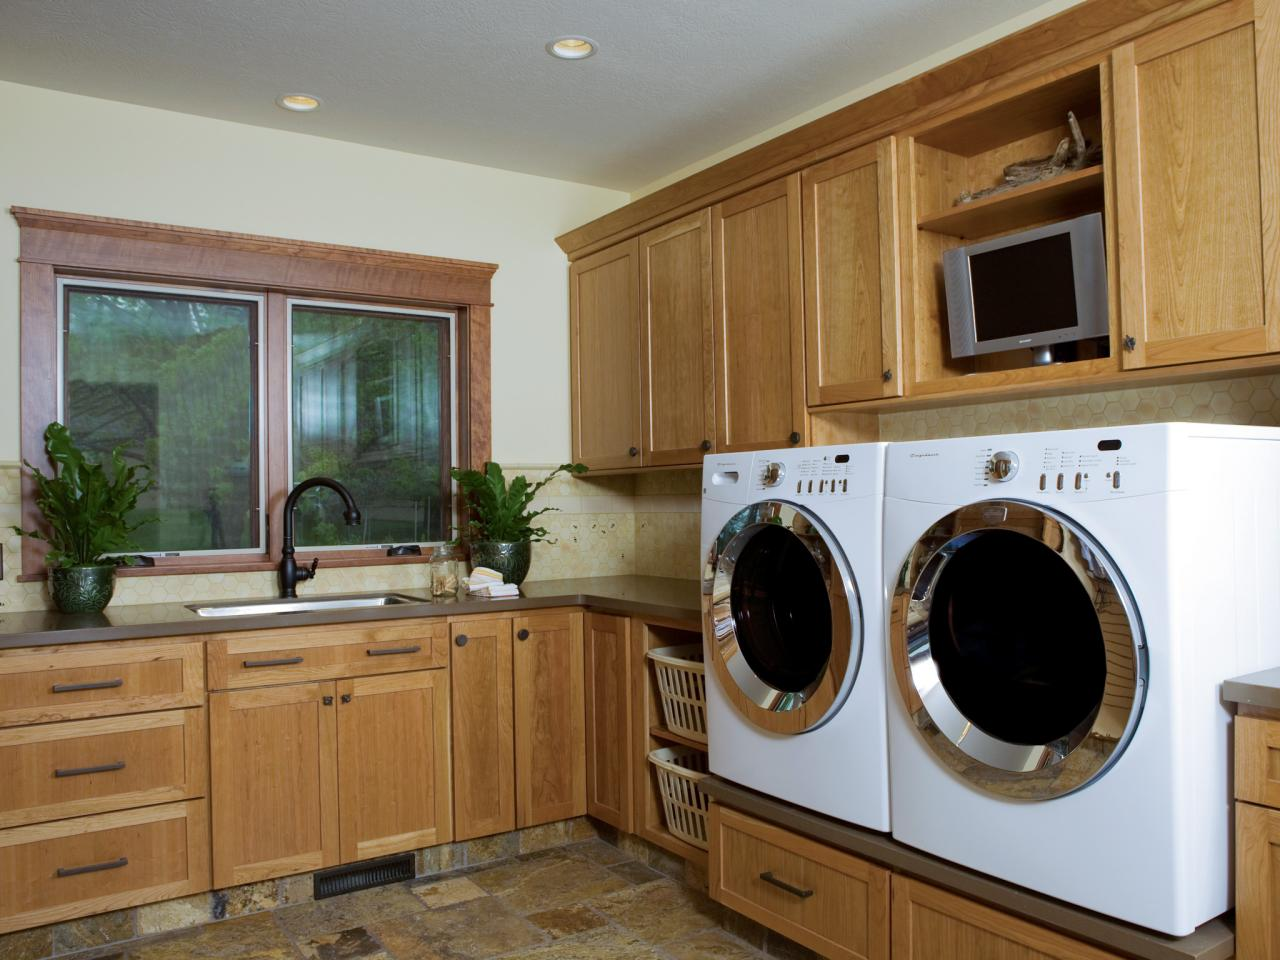 Laundry room organization and storage ideas pictures - Laundry room design ideas ...